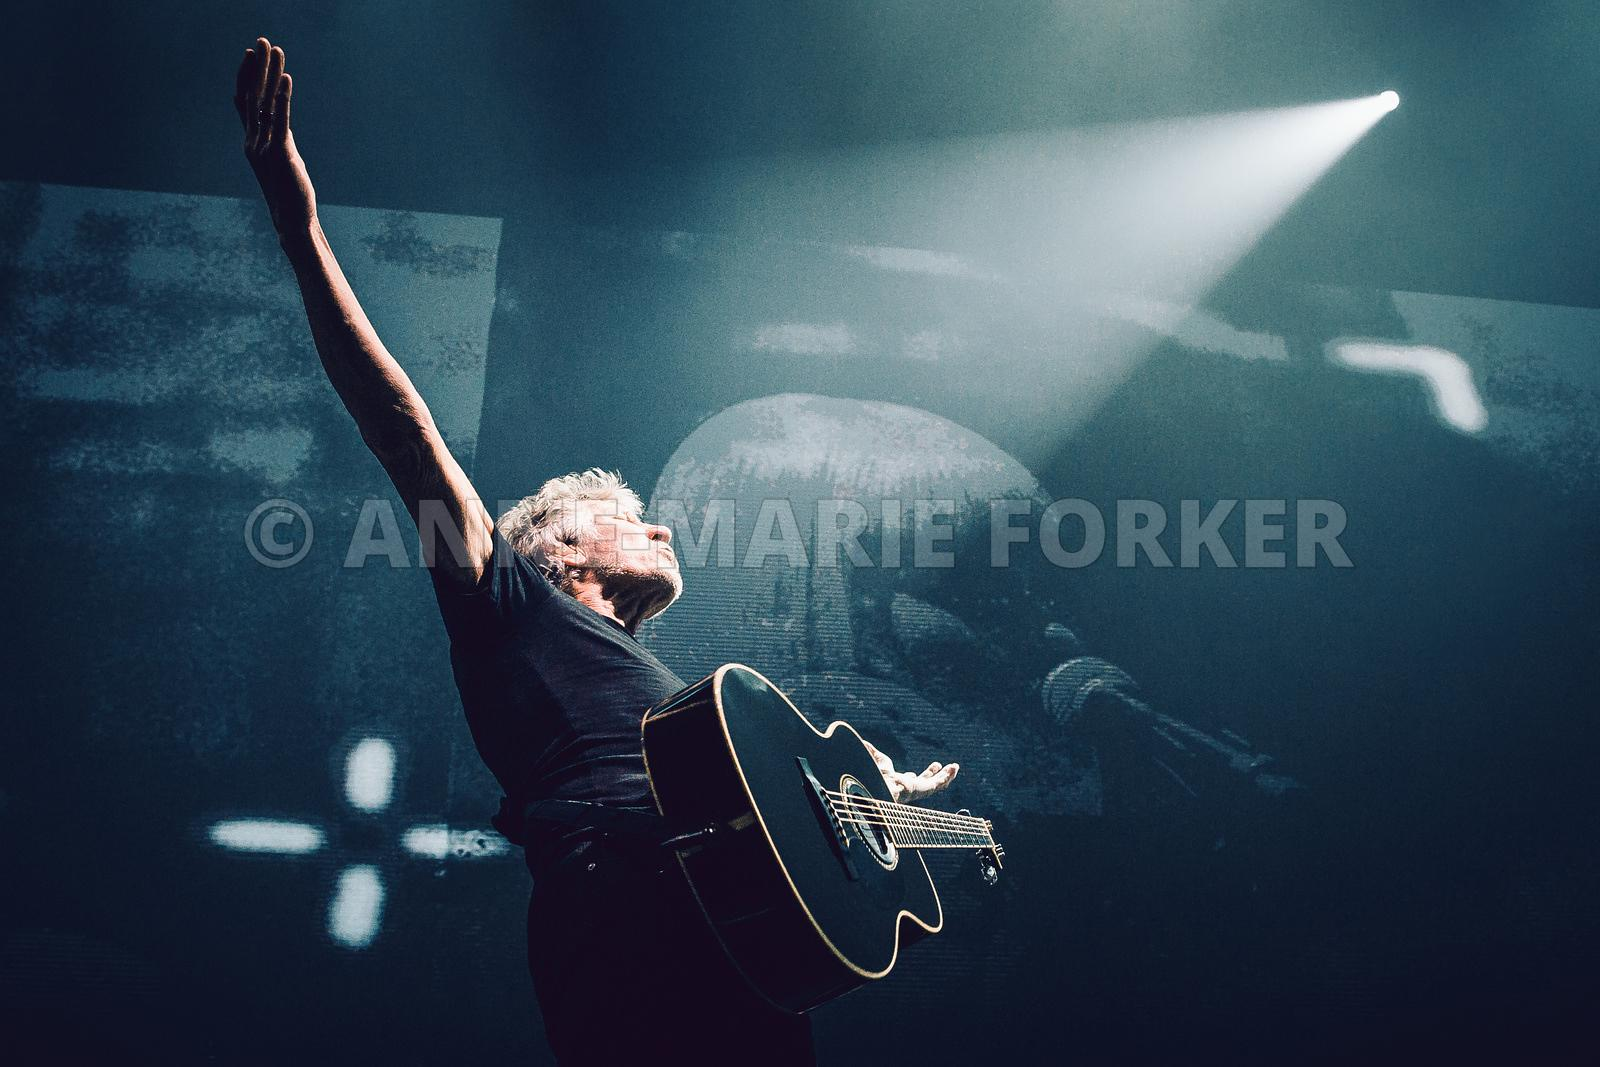 Roger_Waters_-_Anne-Marie_Forker-7029